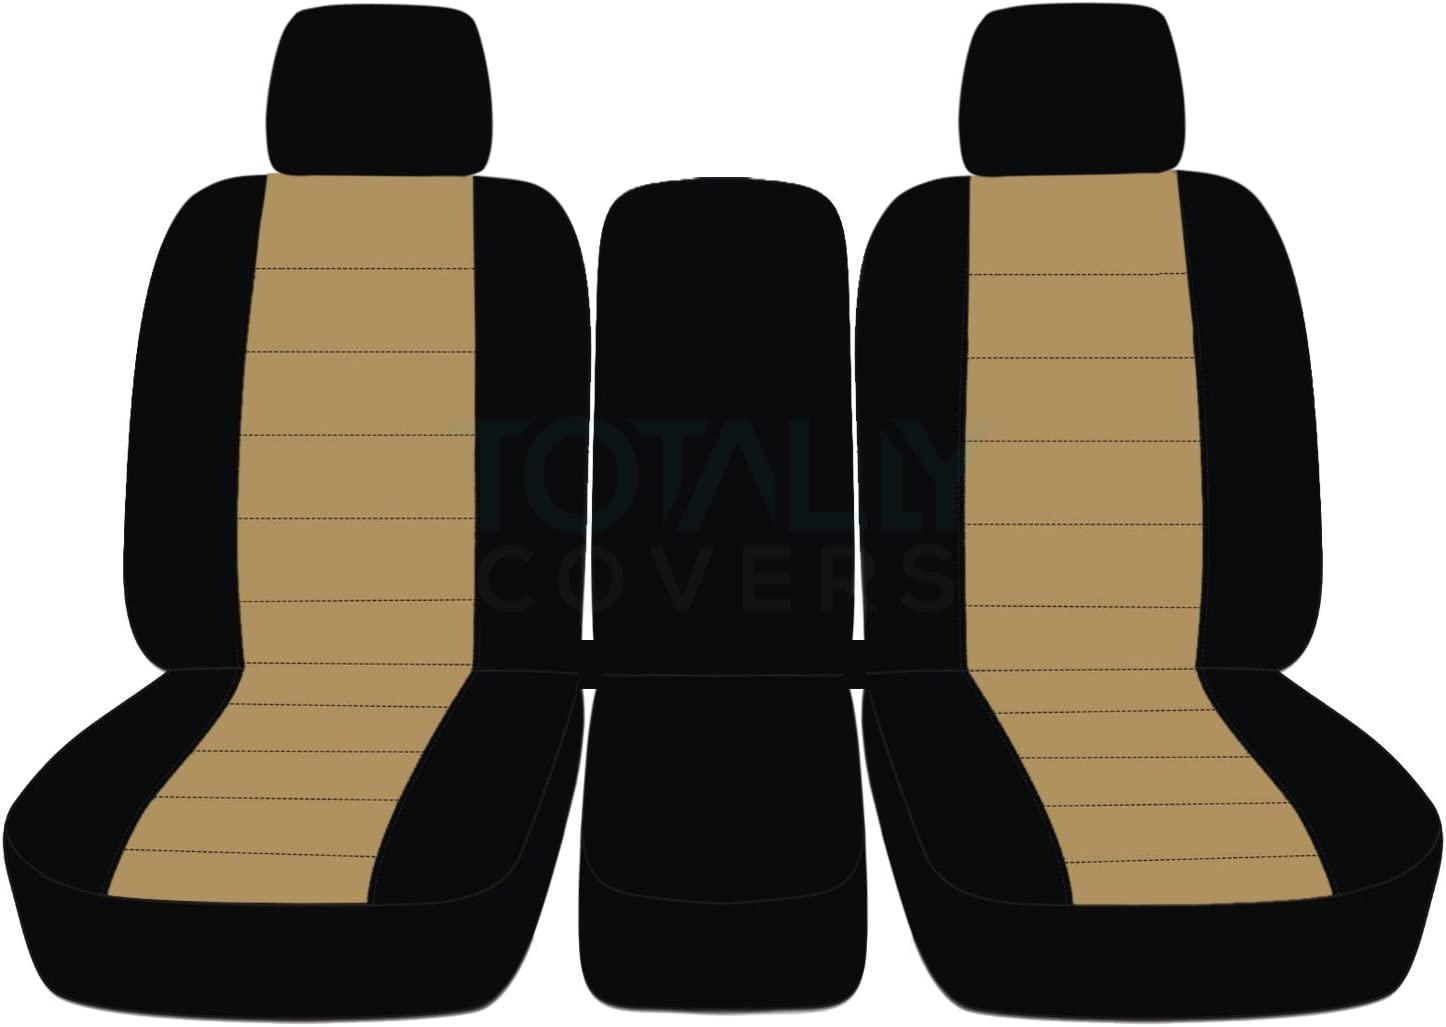 21 Colors w 2 Headrests /& Opening Center Console//Solid Armrest: Black /& Gray F-Series F150 Totally Covers compatible with 2009-2010 Ford F-150 Two-Tone Truck Seat Covers Front 40//20//40 Split Bench